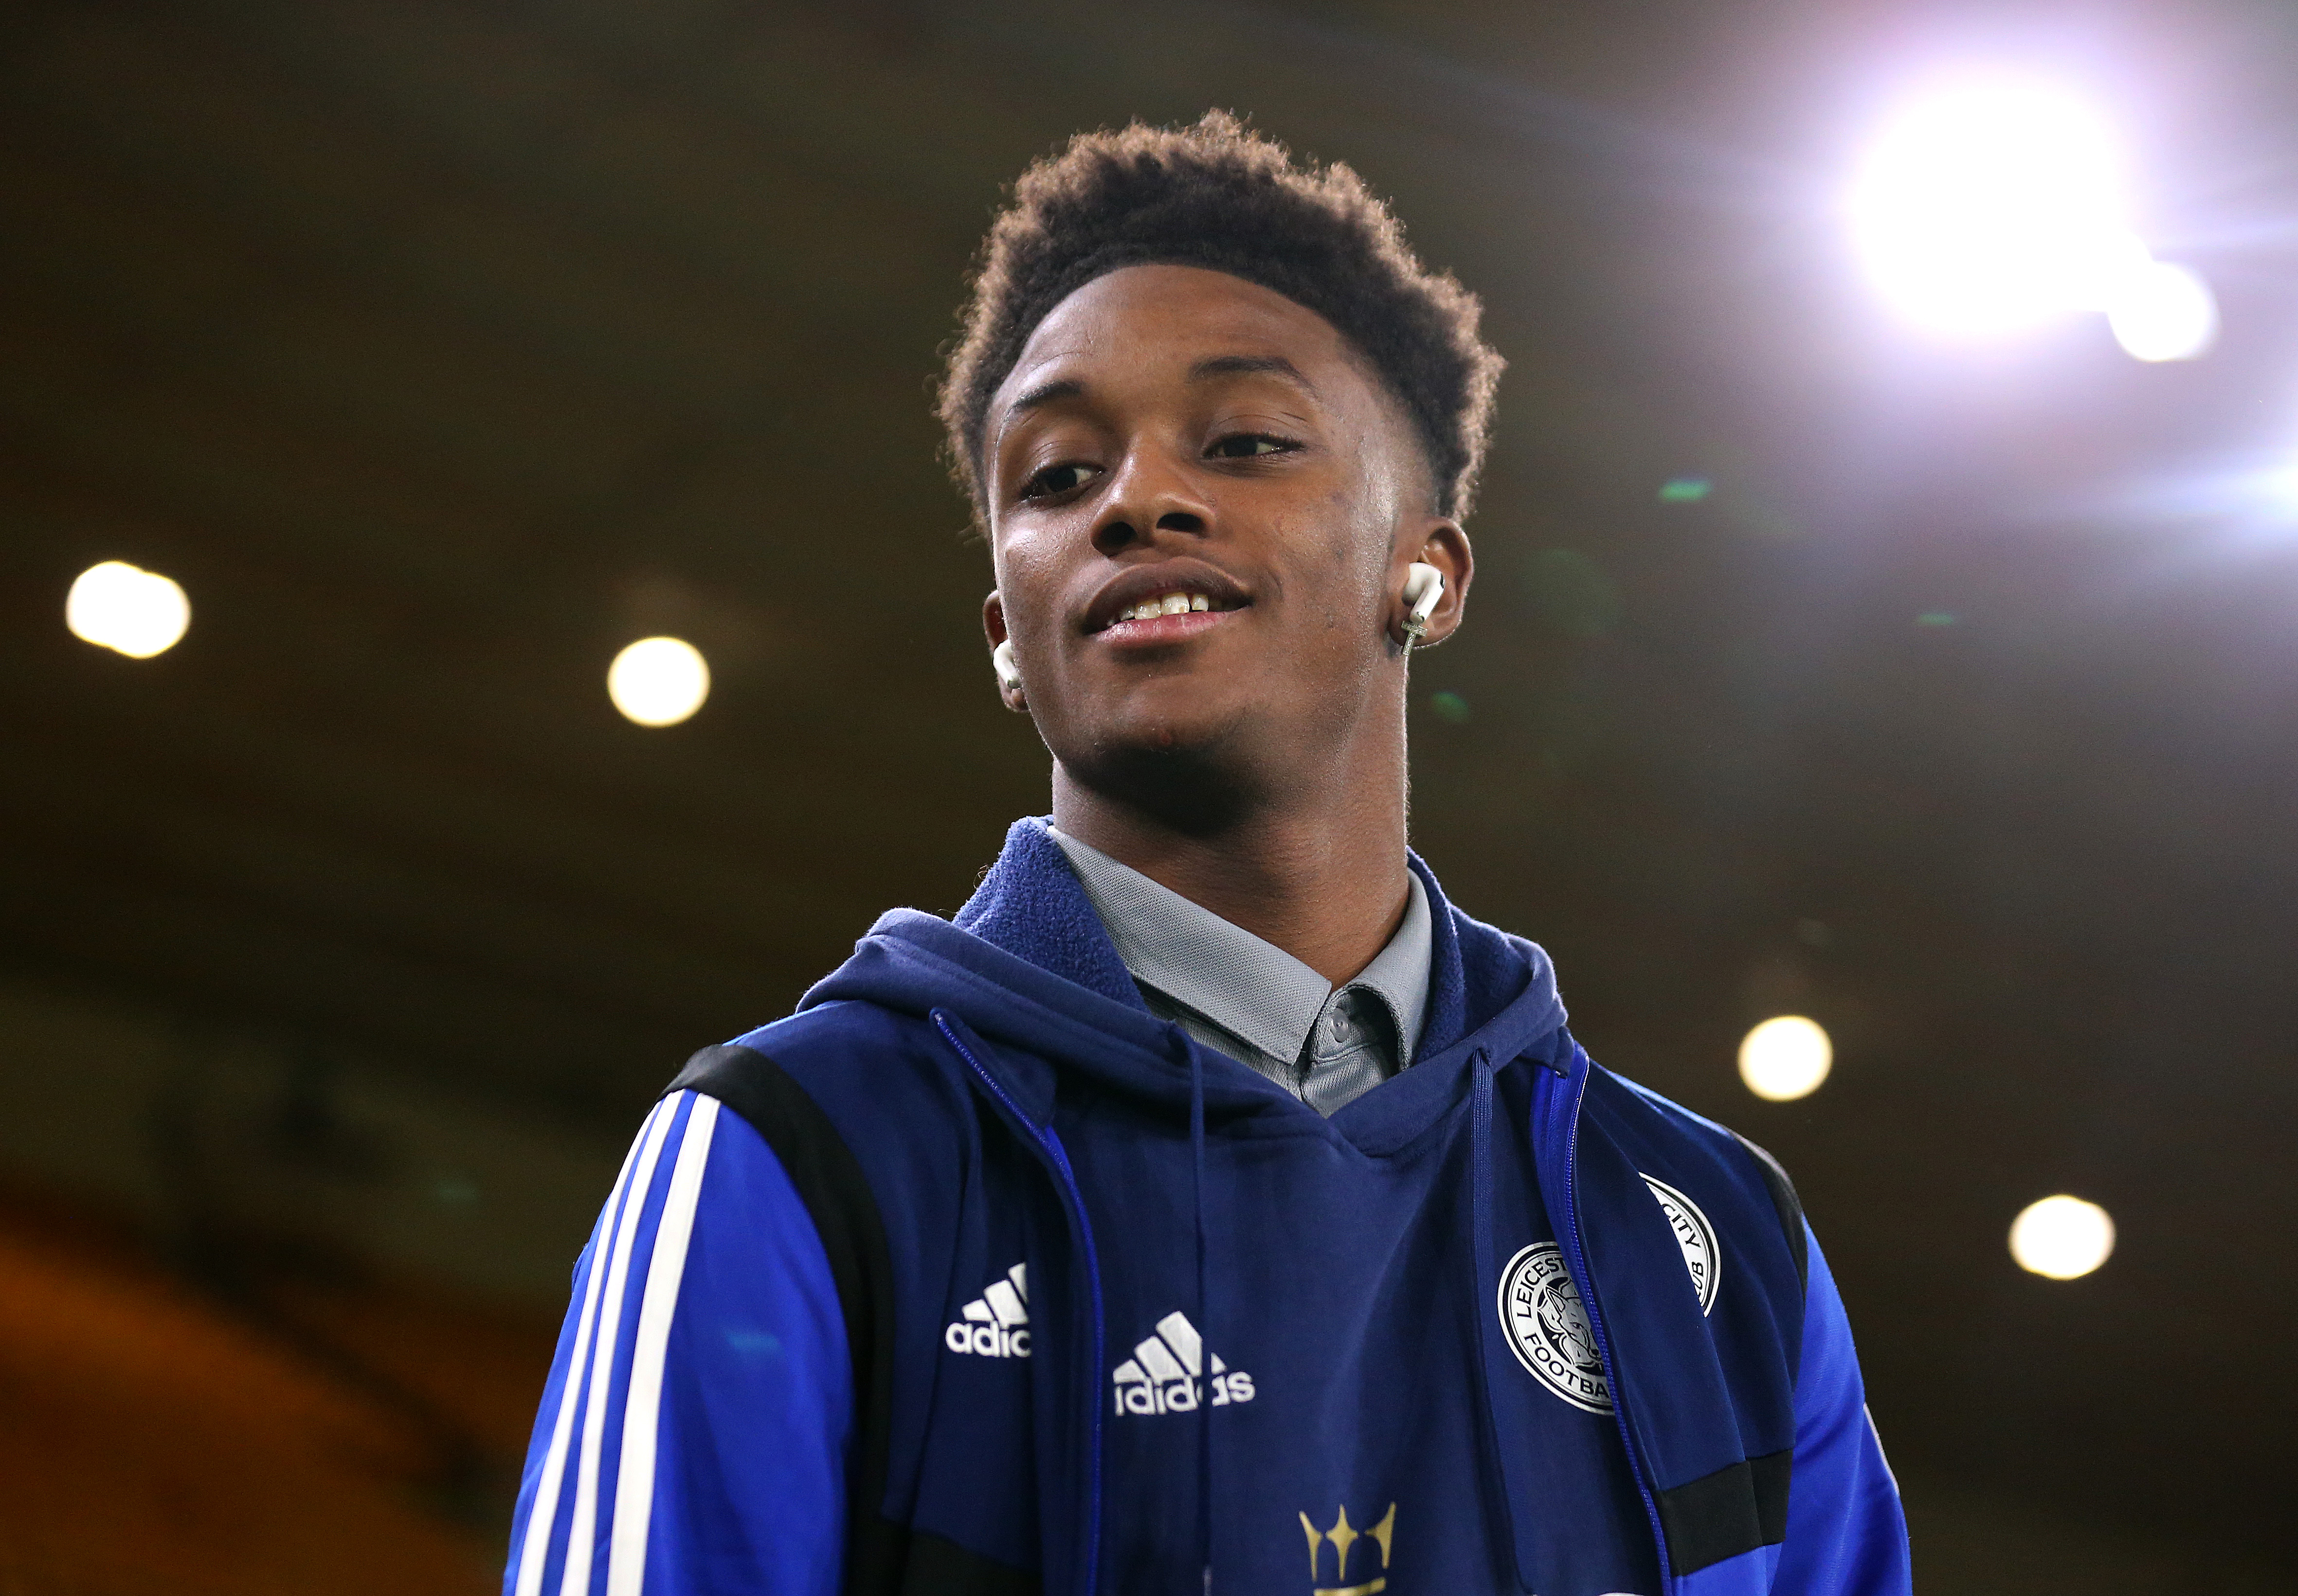 Tottenham Hotspur are interested in the services of Demarai Gray - A wise option for Mourinho?